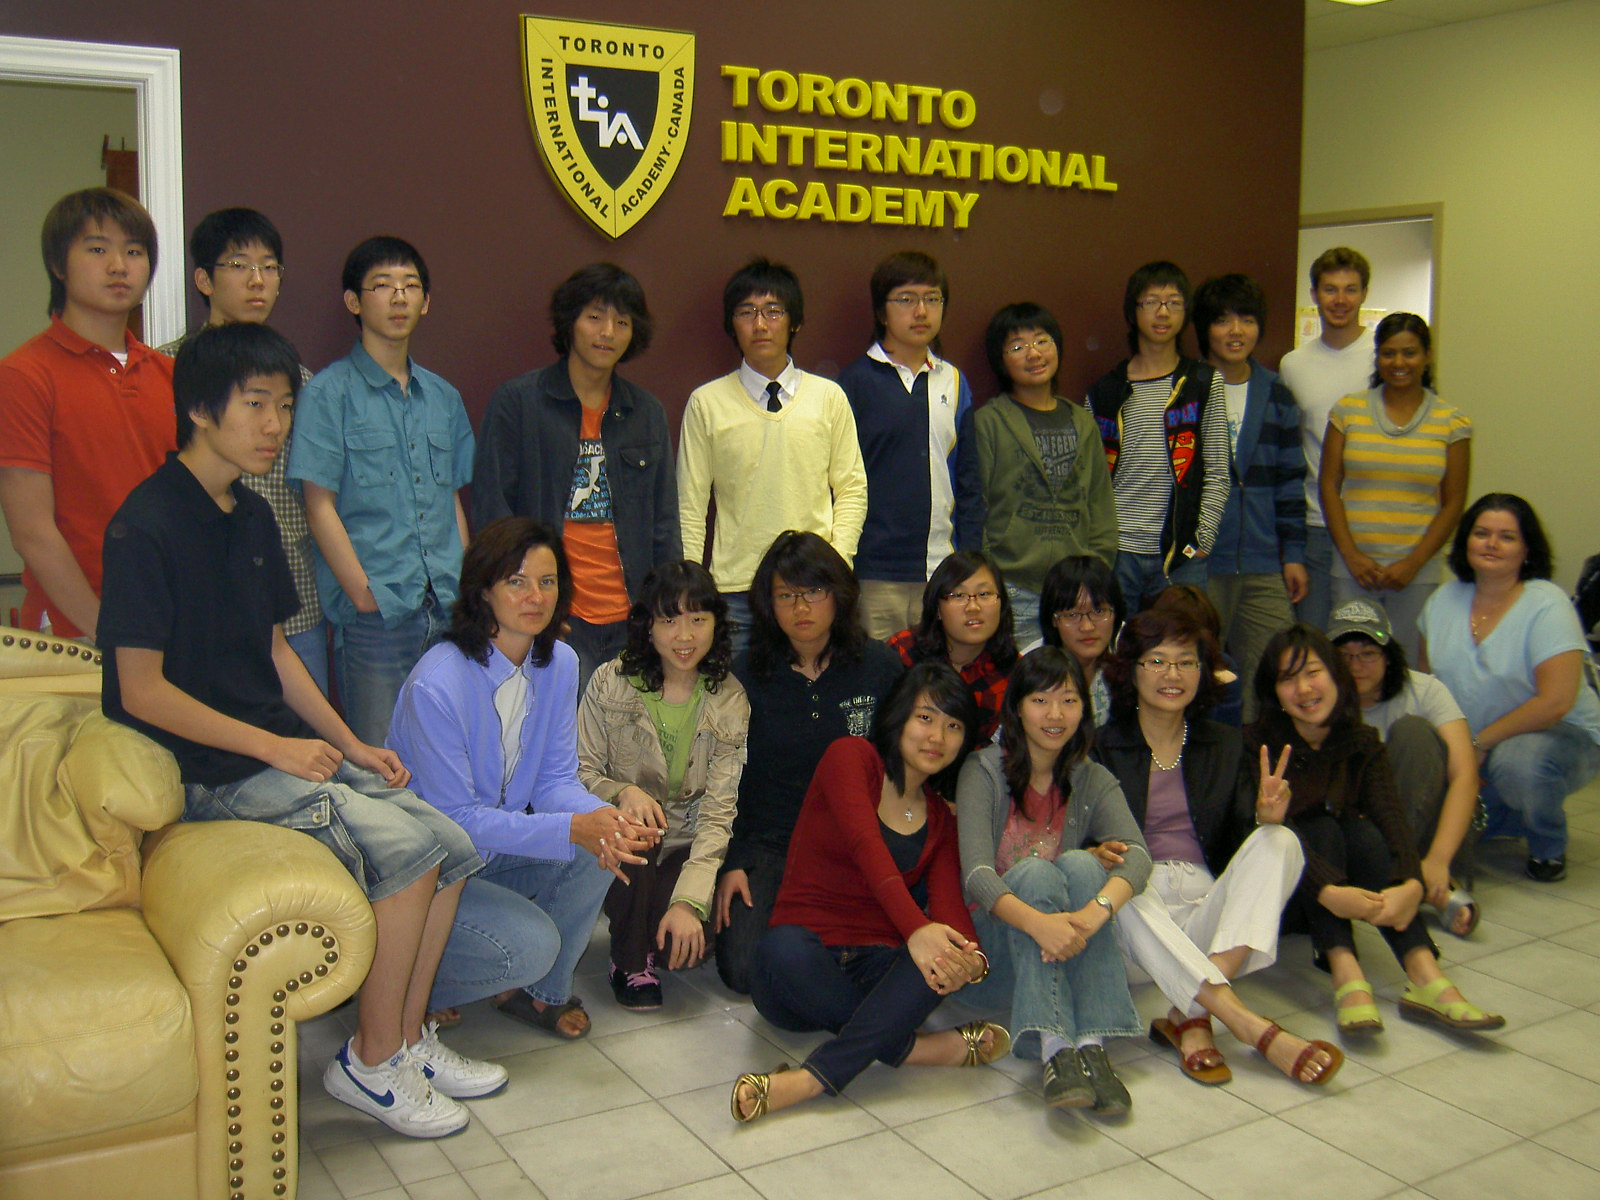 toronto international academy